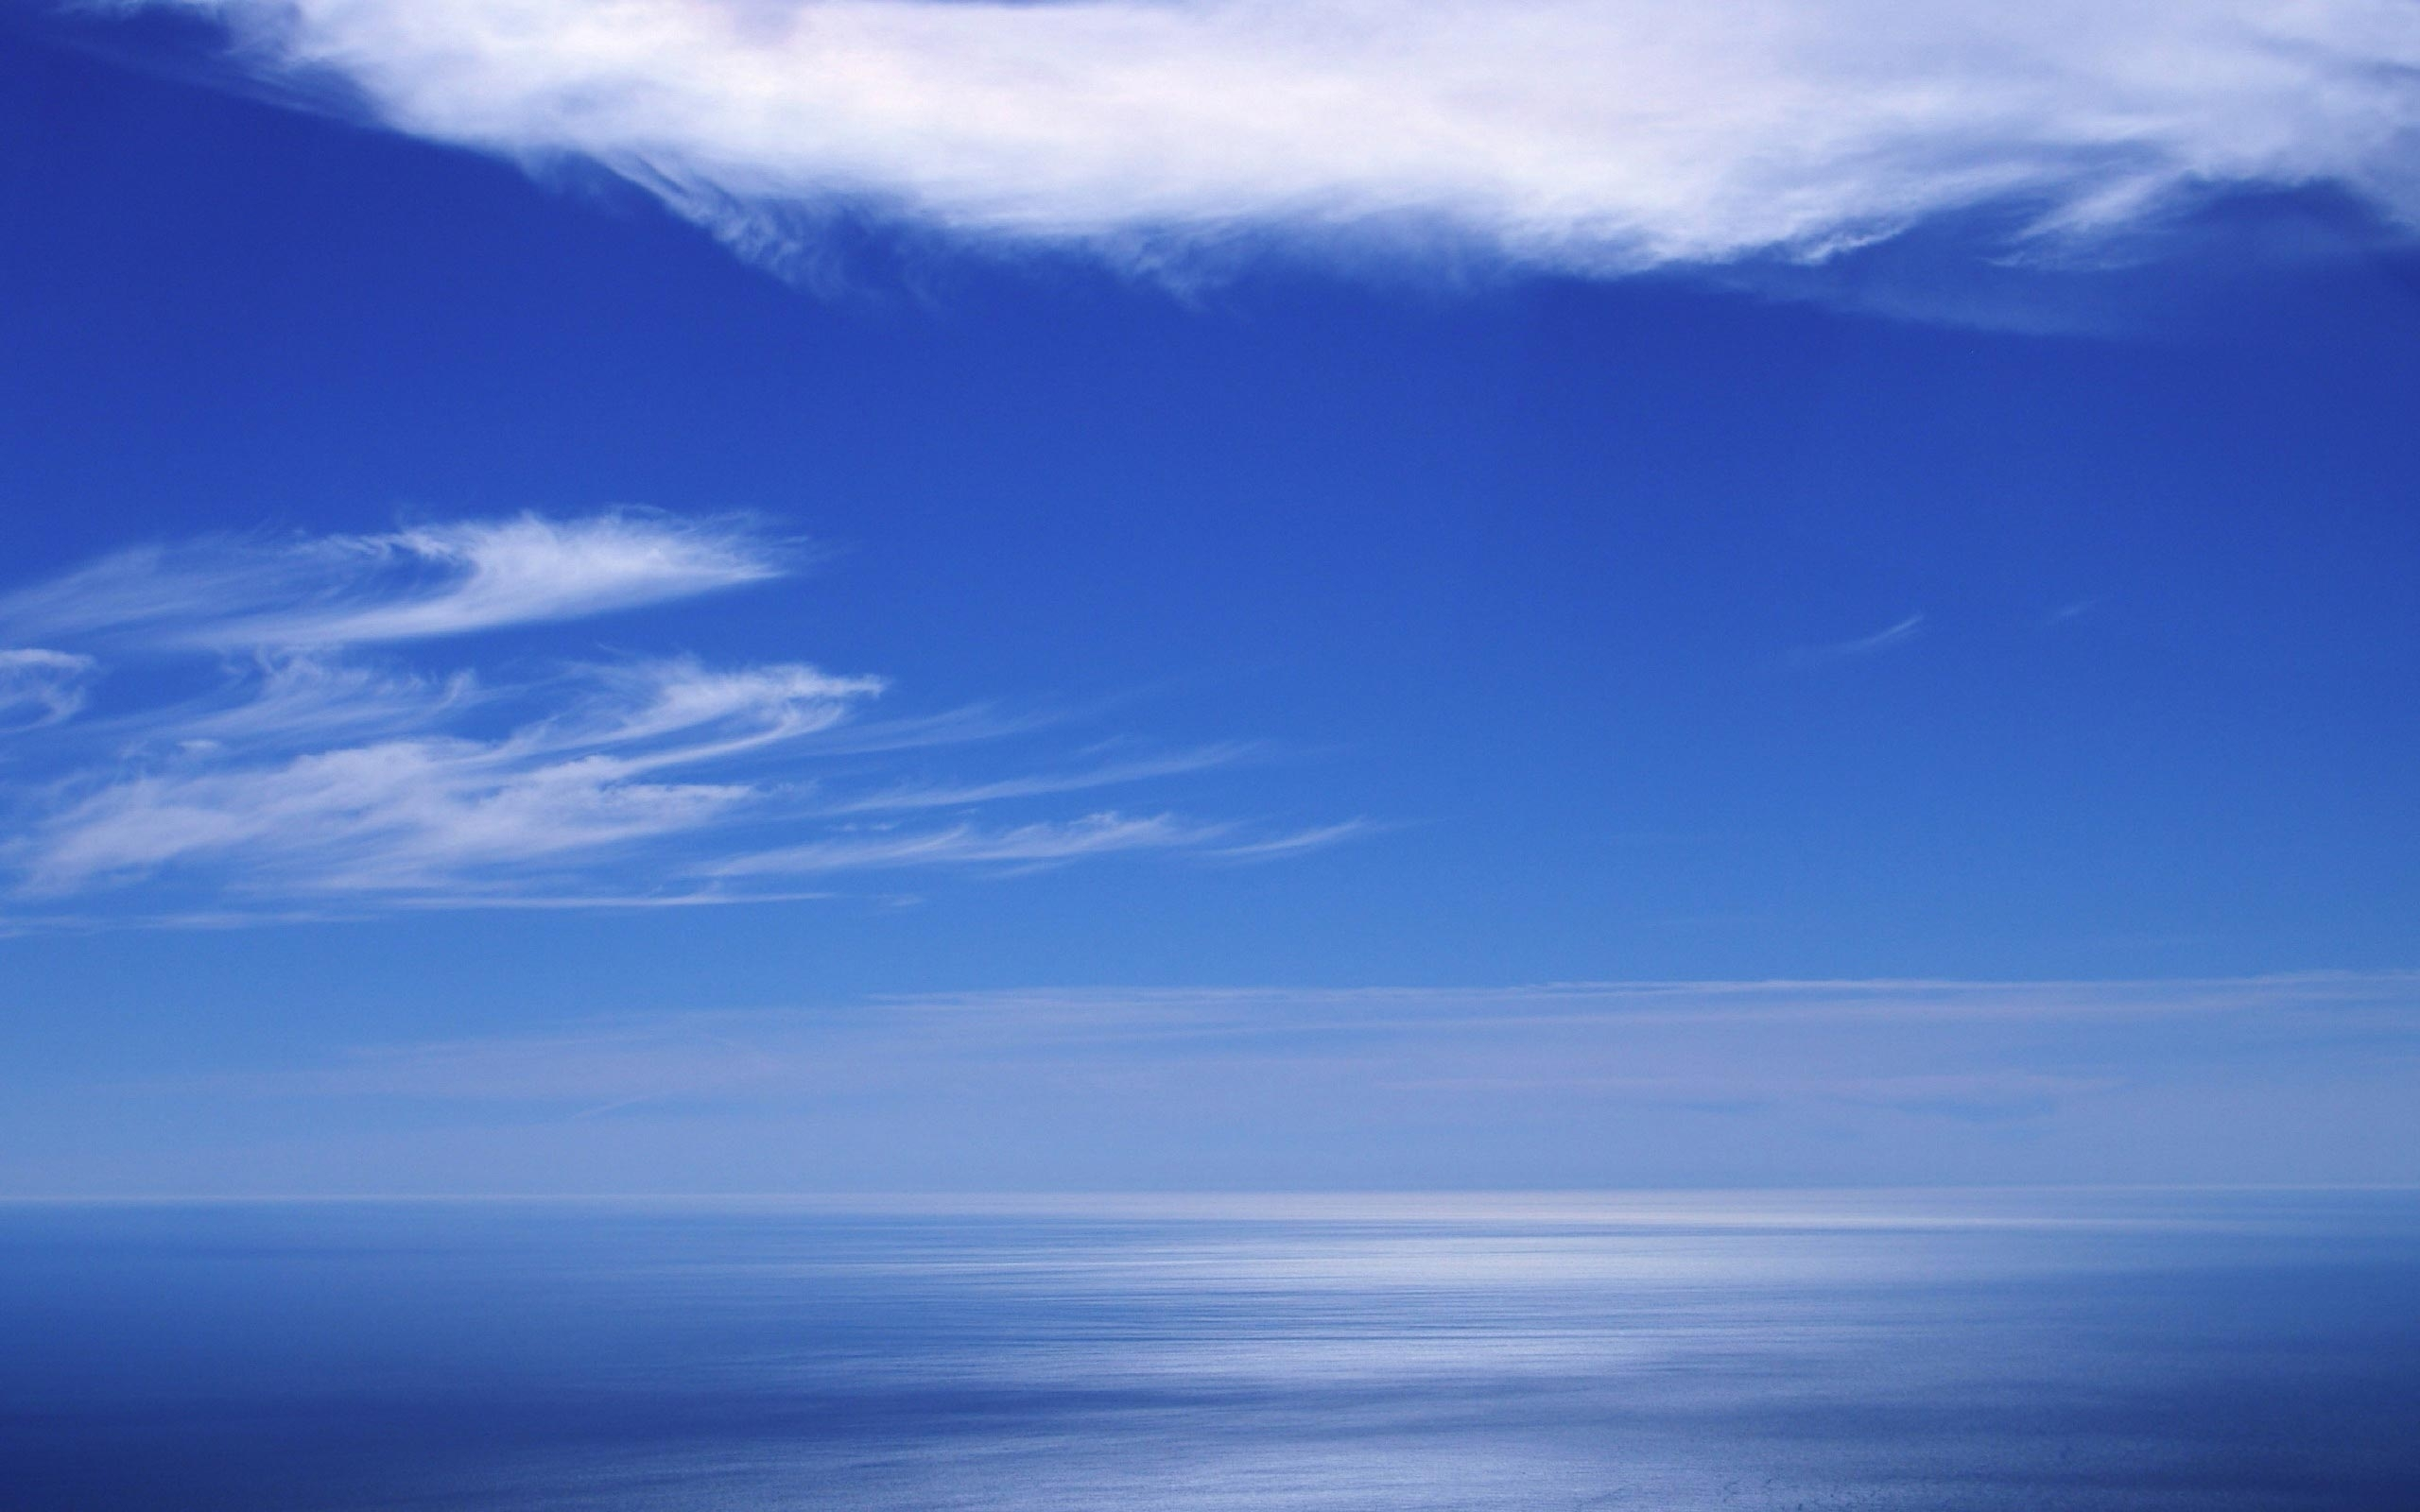 blue sky wallpapers | hd wallpapers | id #532